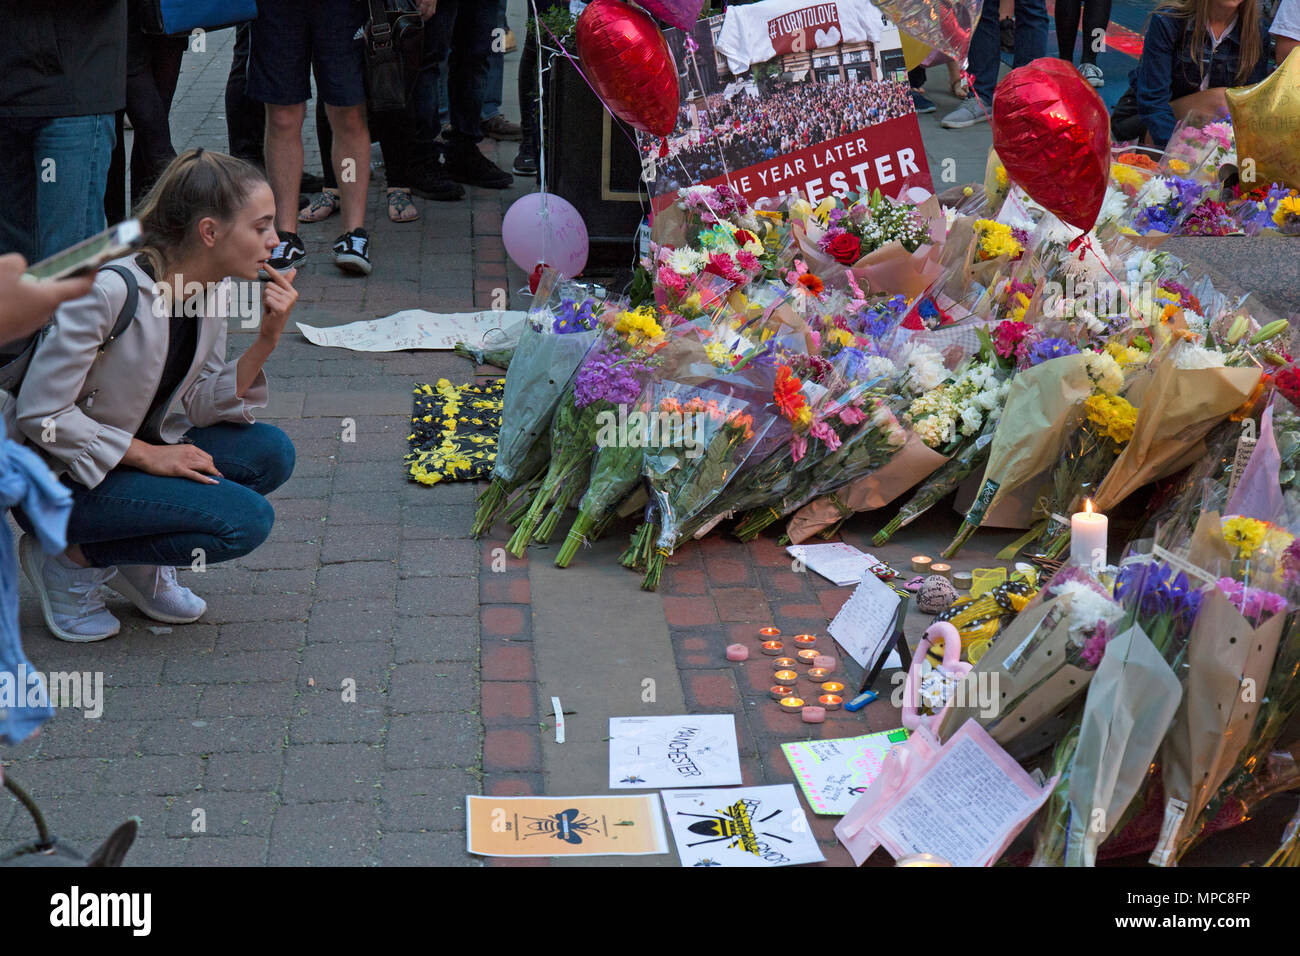 Manchester, UK. 22nd May, 2018. Young female looking at the floral tributes left in St. Ann's Square in the center of Manchester, to remember the 22 victims of the bombing of the Manchester Arena, following the concert given by the American singer Ariana Grande. Credit: Rob Carter/Alamy Live News - Stock Image